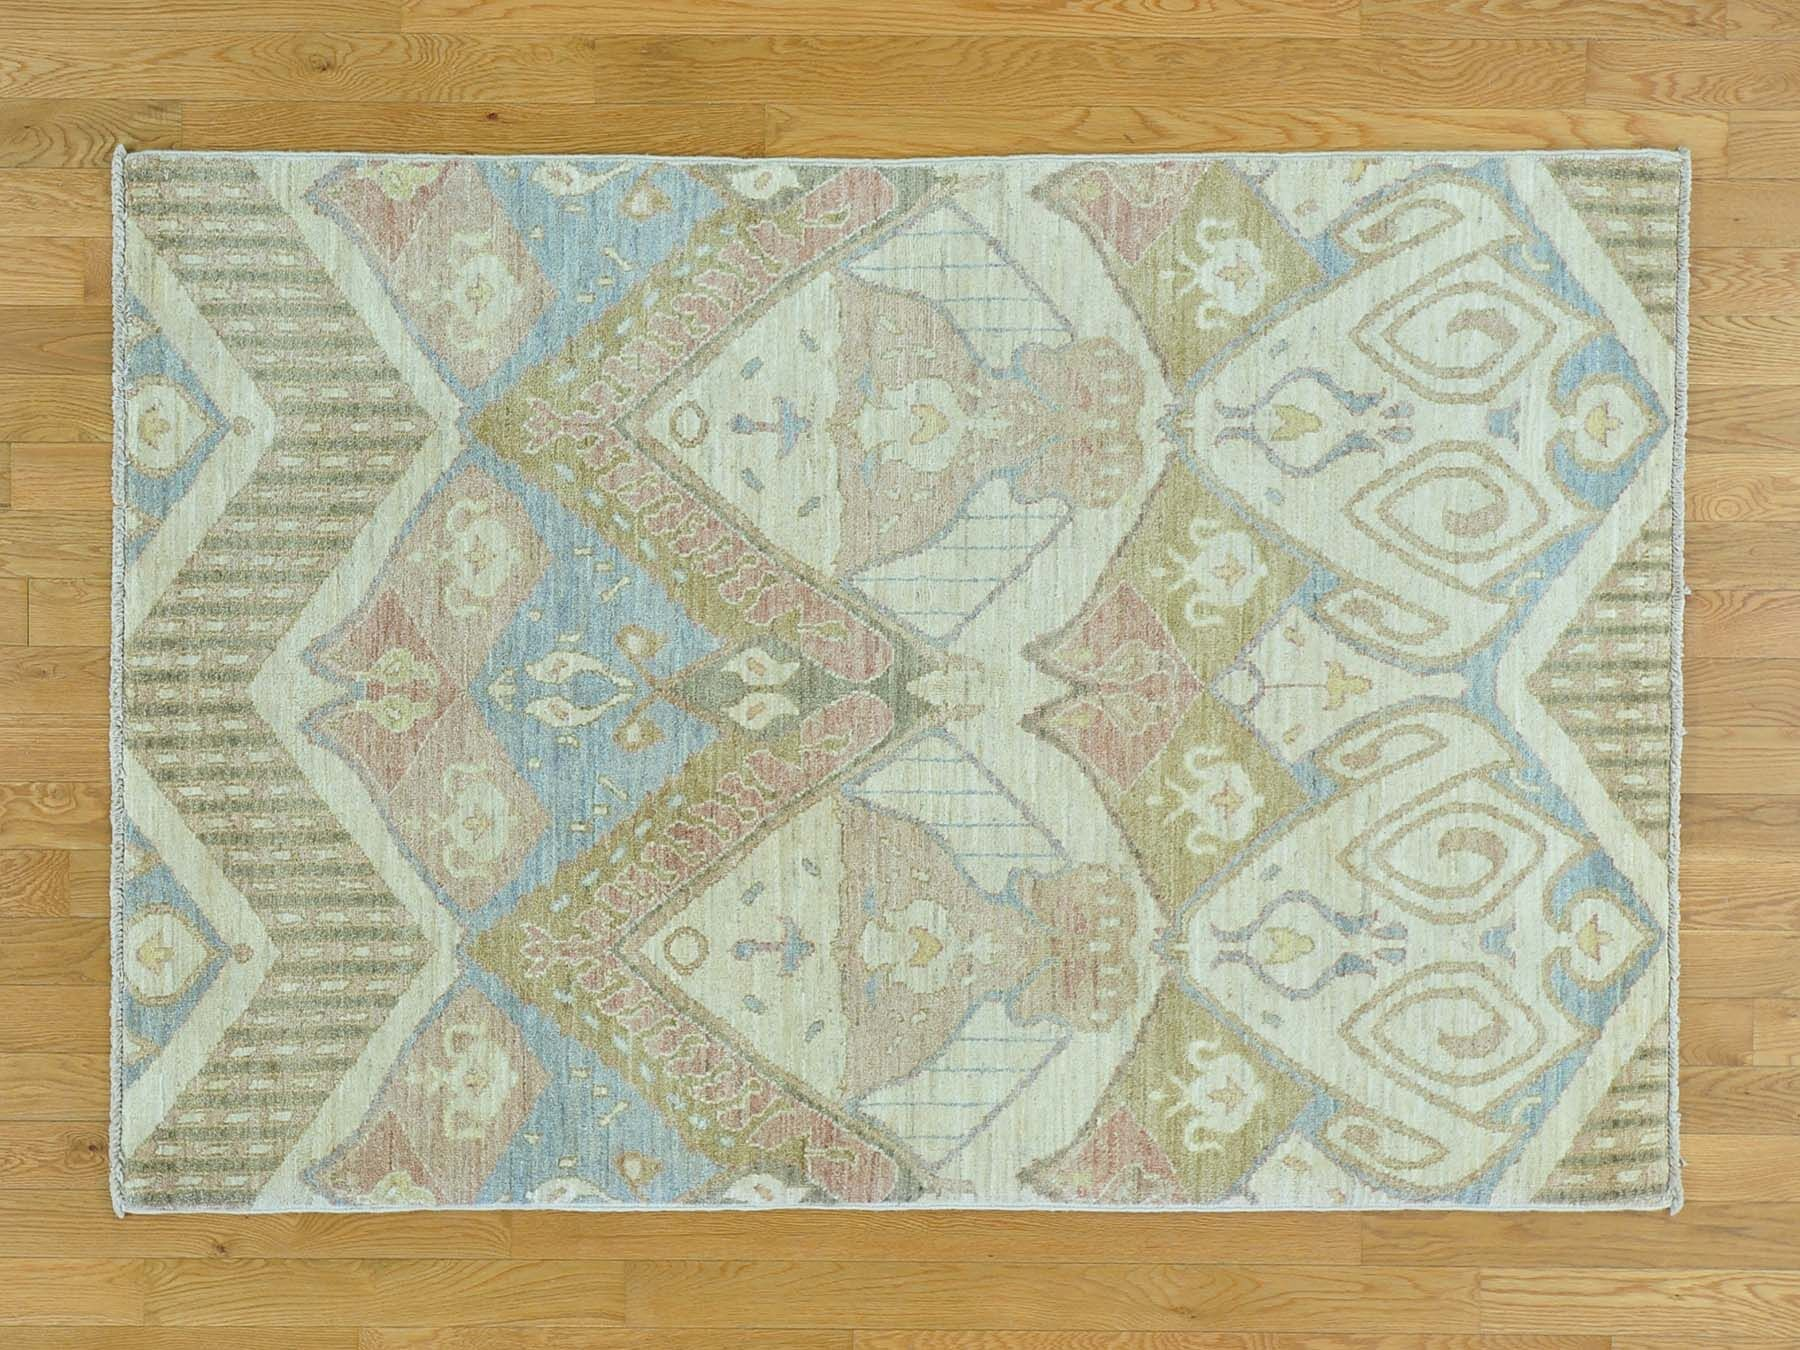 One-of-a-Kind Claflin Ikat Uzbek Design Hand-Knotted Wool Area Rug